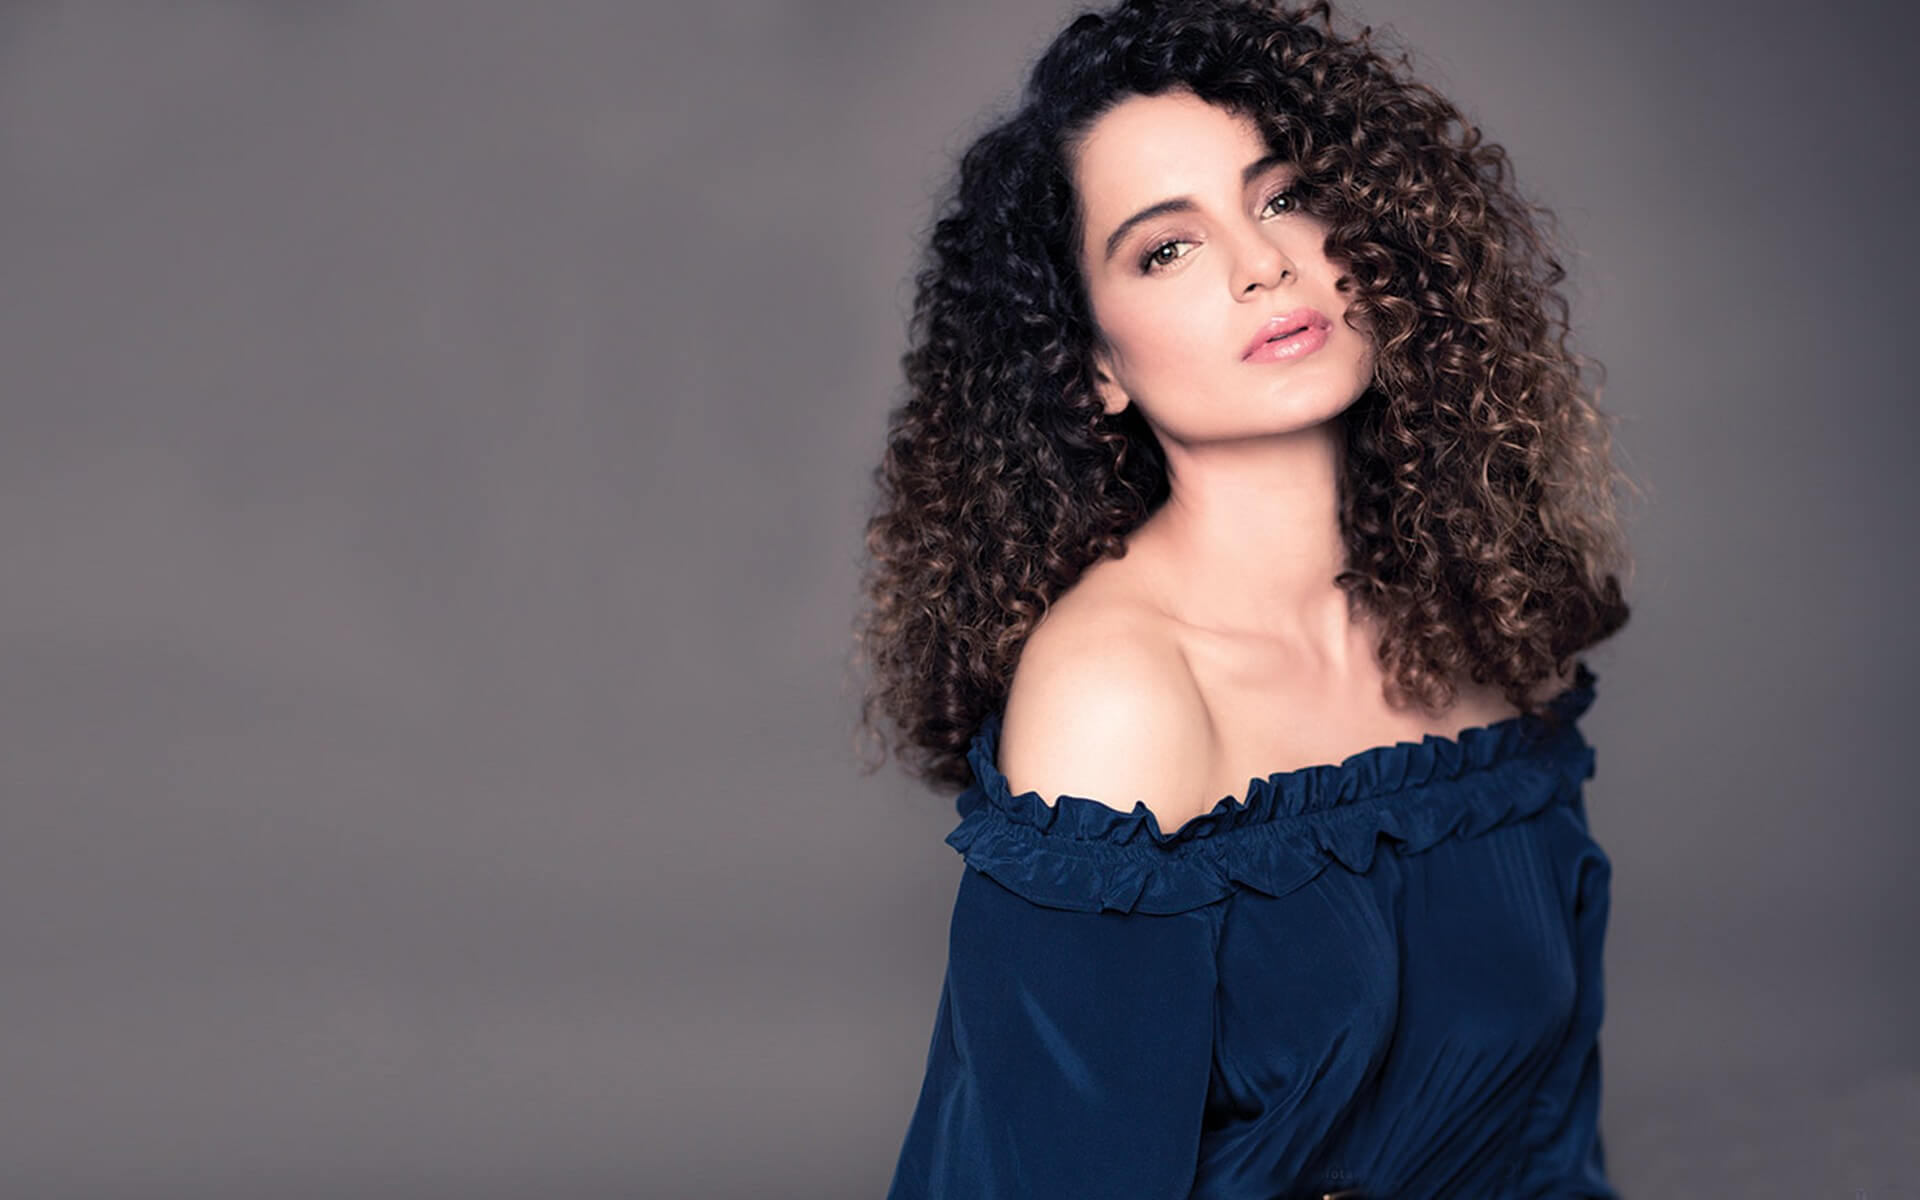 Kangana Ranaut Age, Sister, Image, Latest News, Net Worth, Biography, Husband, Height, Awards, Photos, Date Of Birth, Twitter, Instagram, Wiki (5)